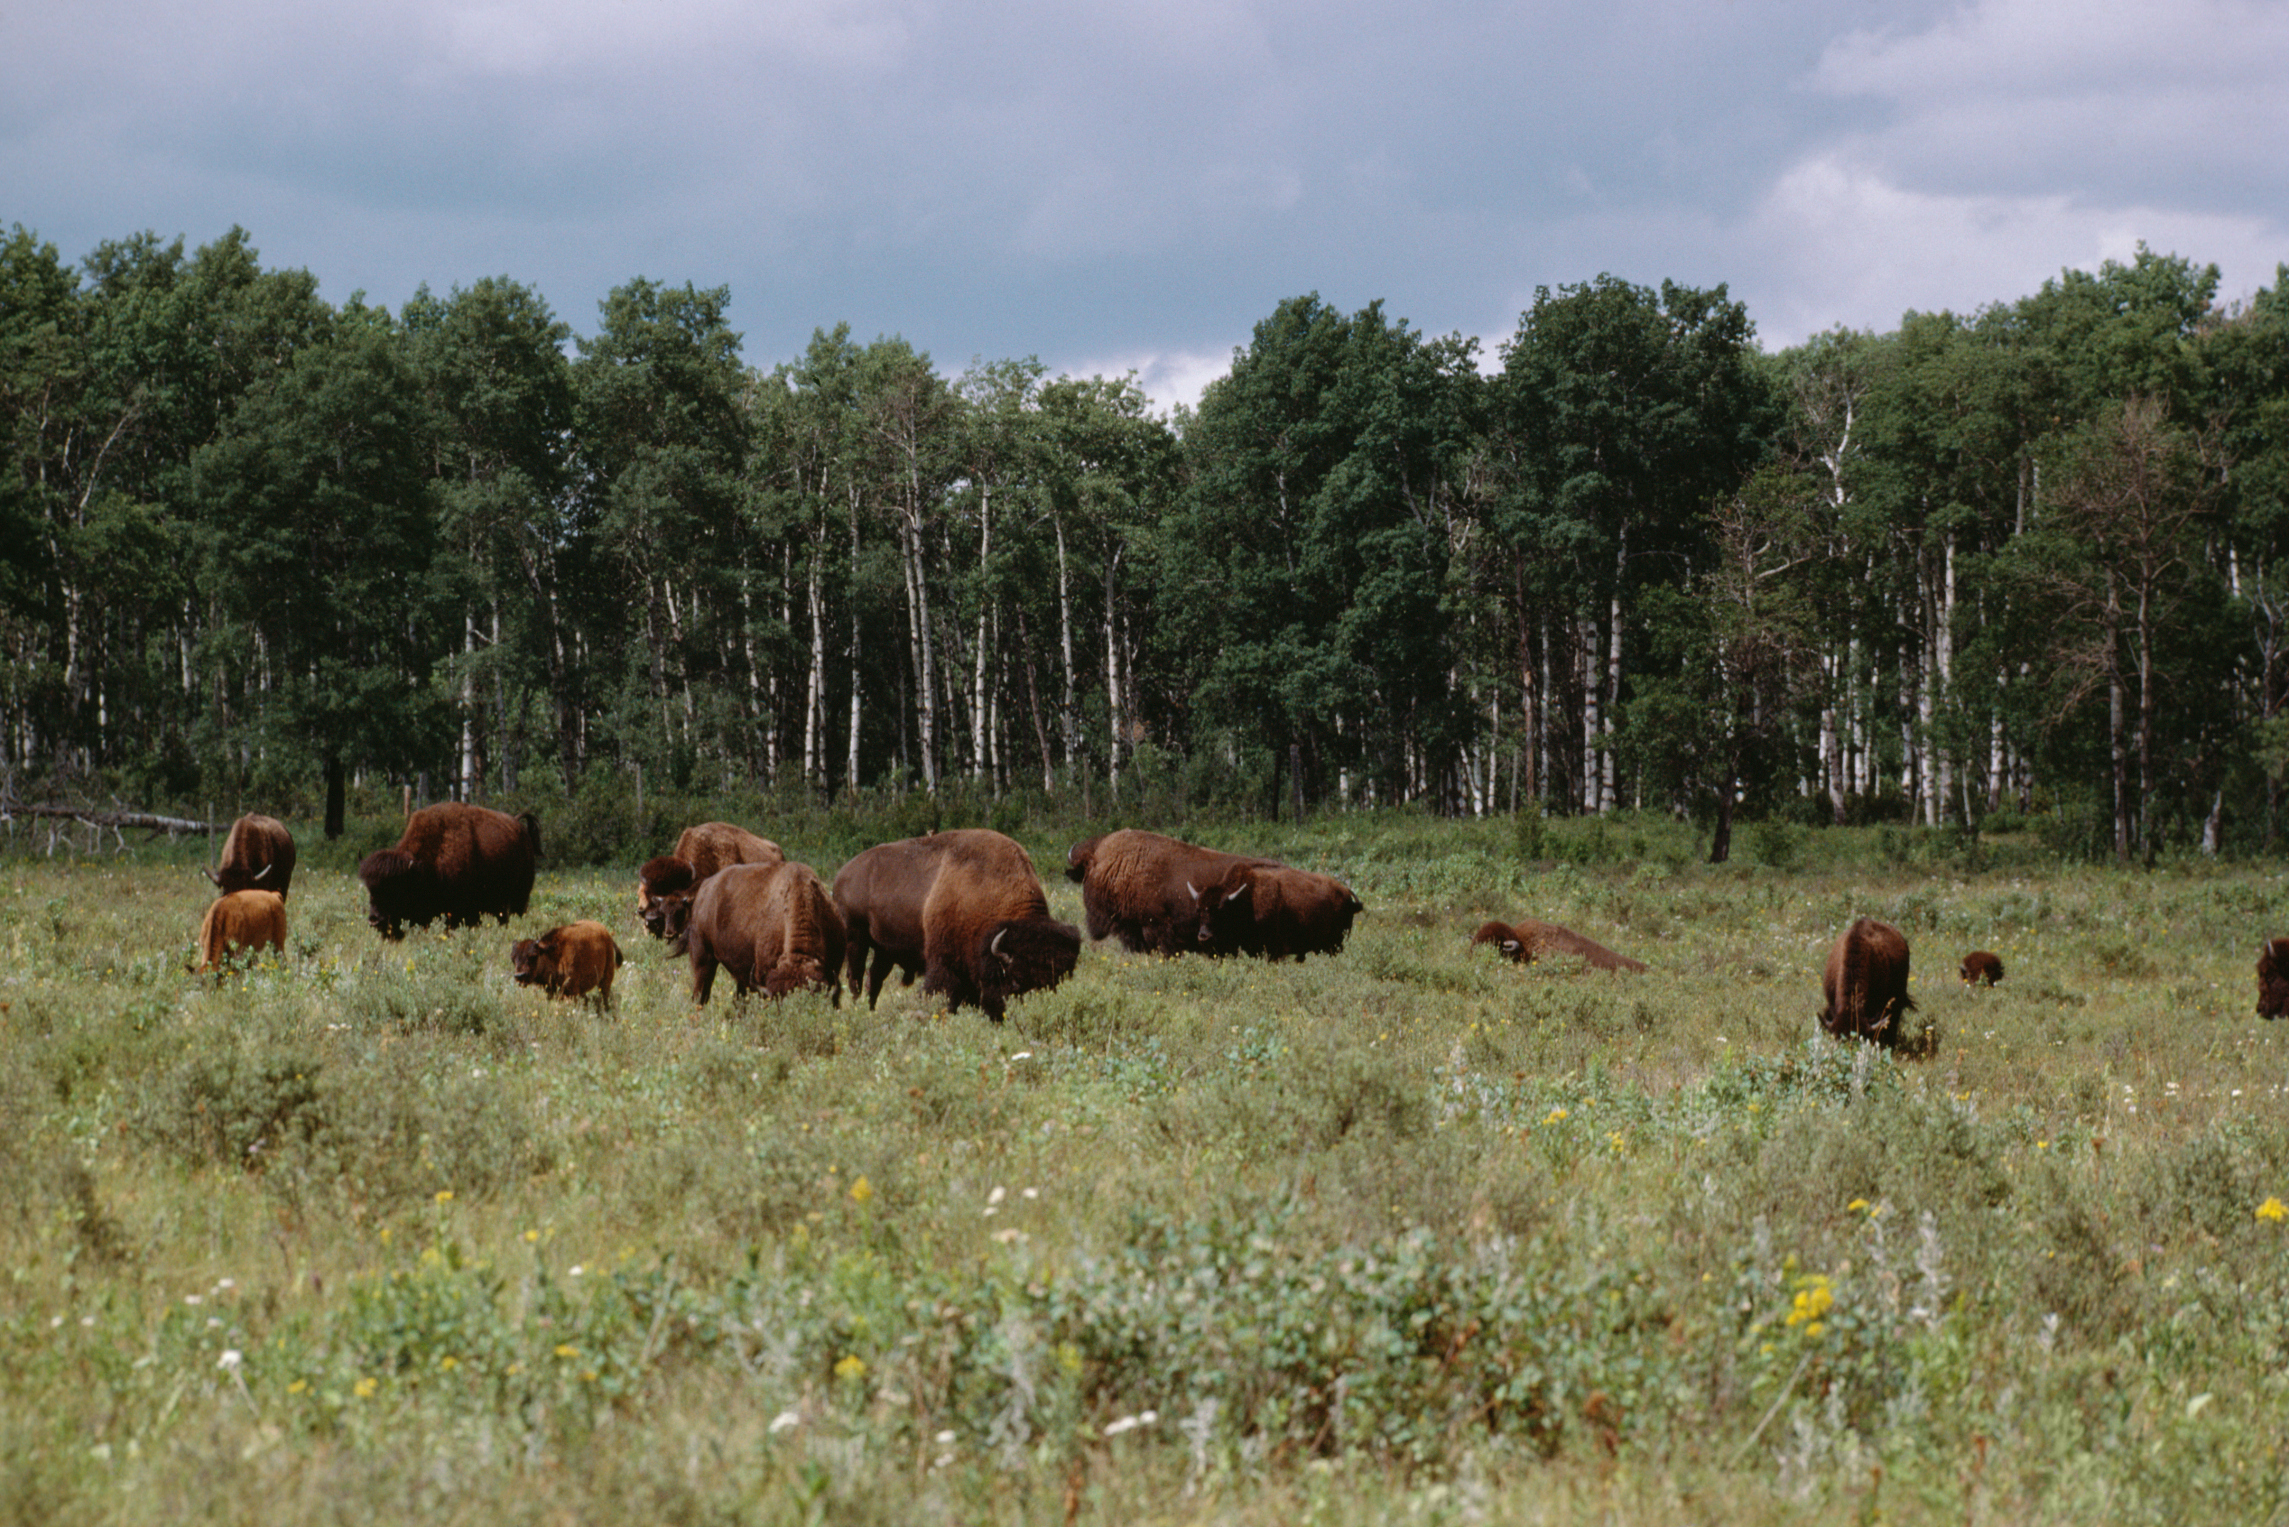 Manitoba is home of wild bison